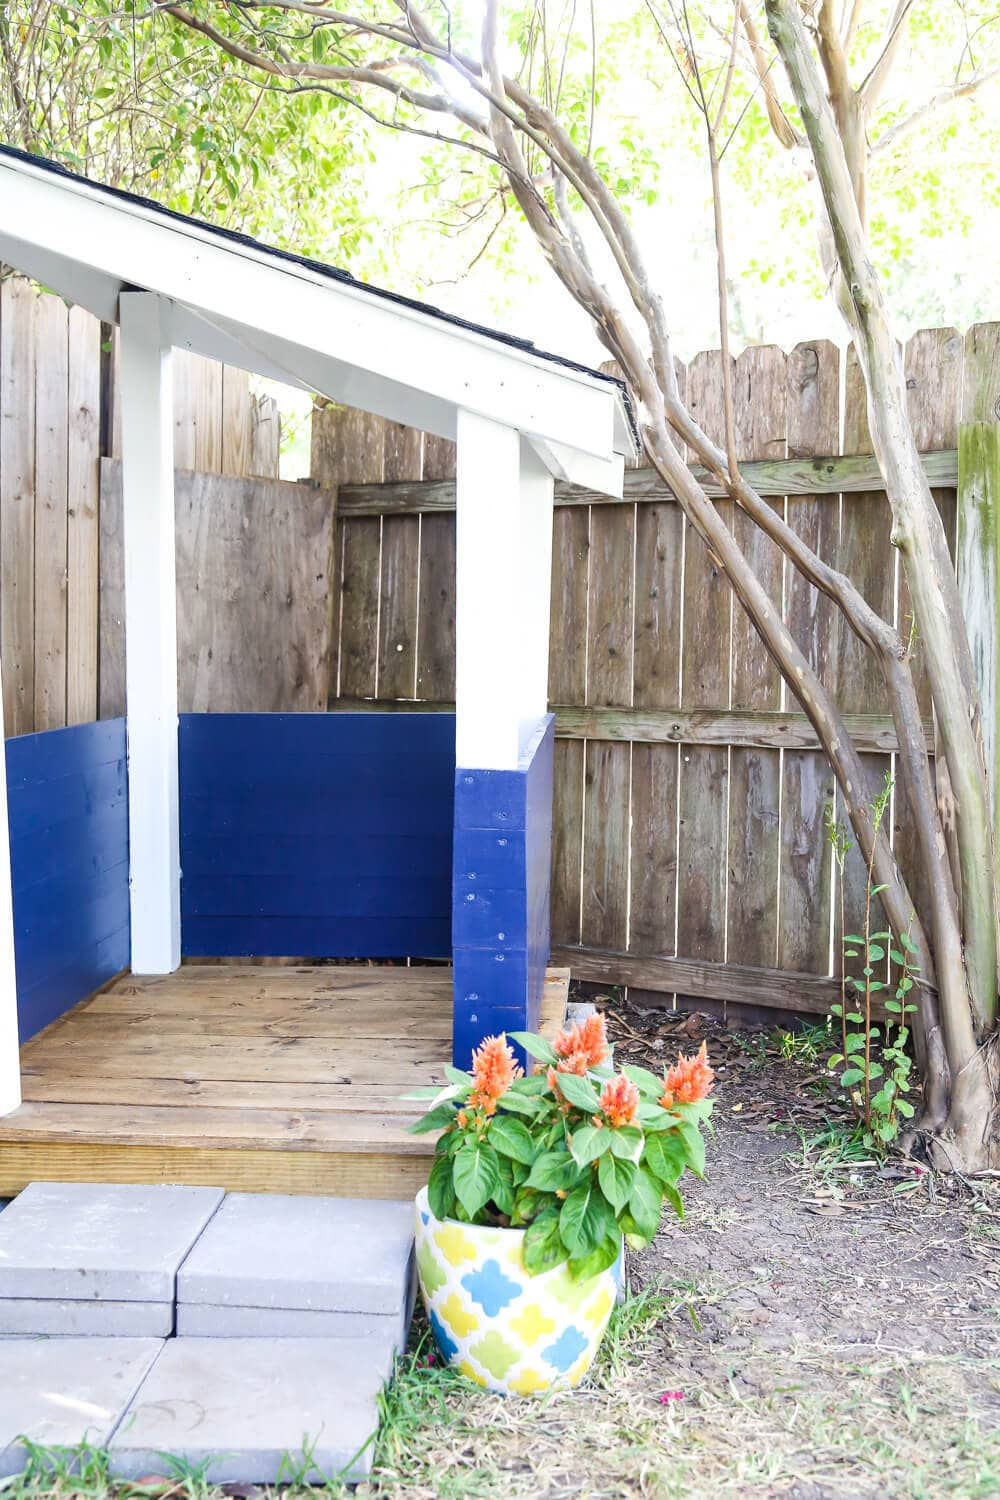 How To Build An Adorable Backyard Playhouse